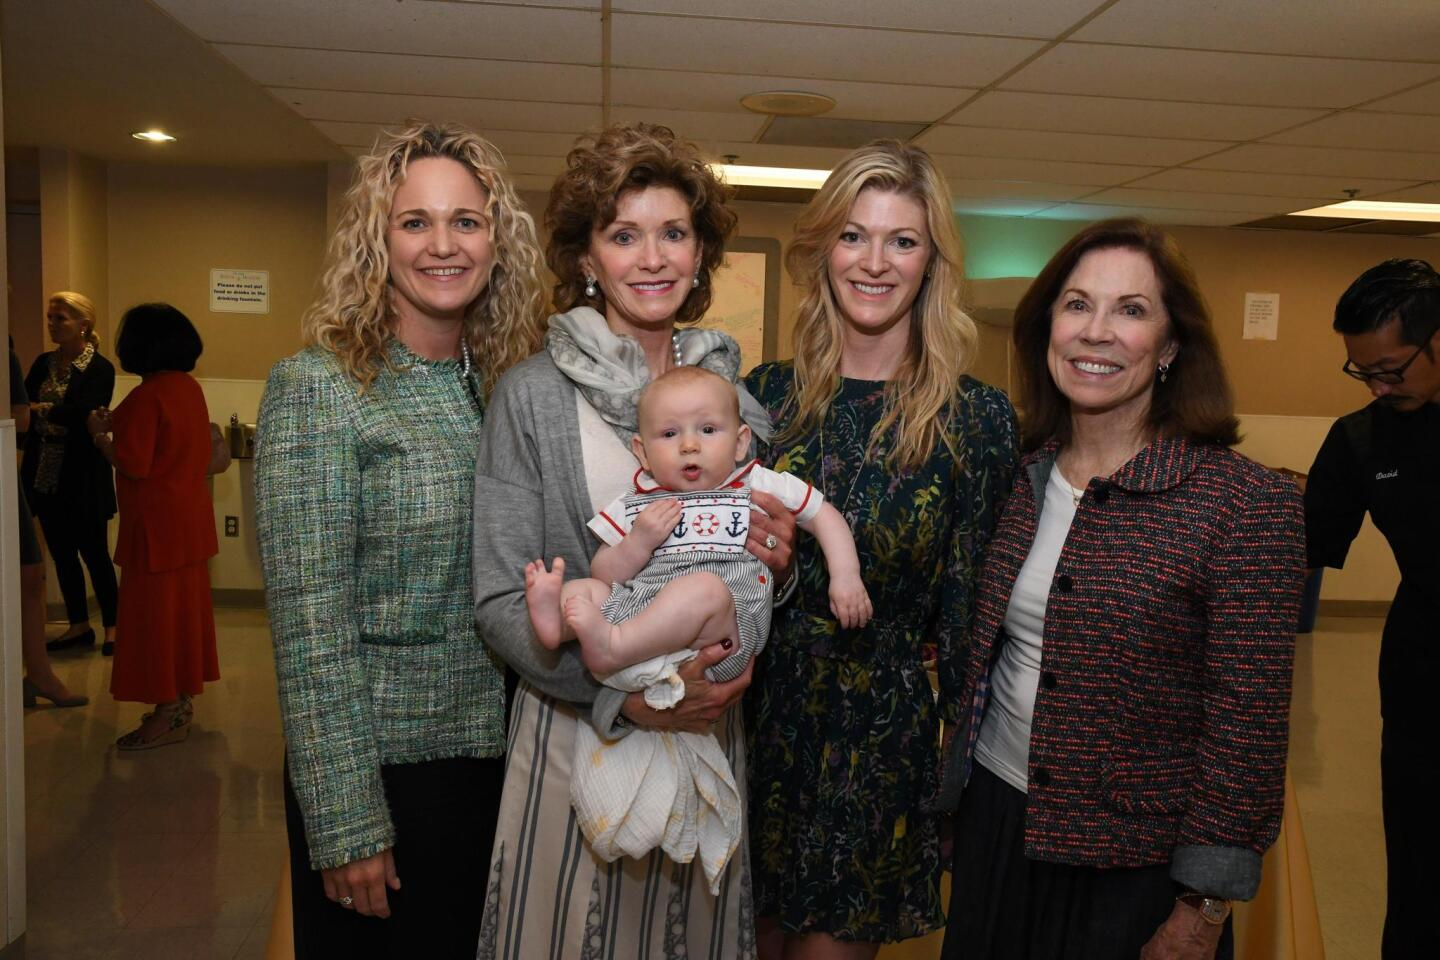 Susan Hoehn's birthday celebration focuses on work of San Diego Rescue Mission to help homeless